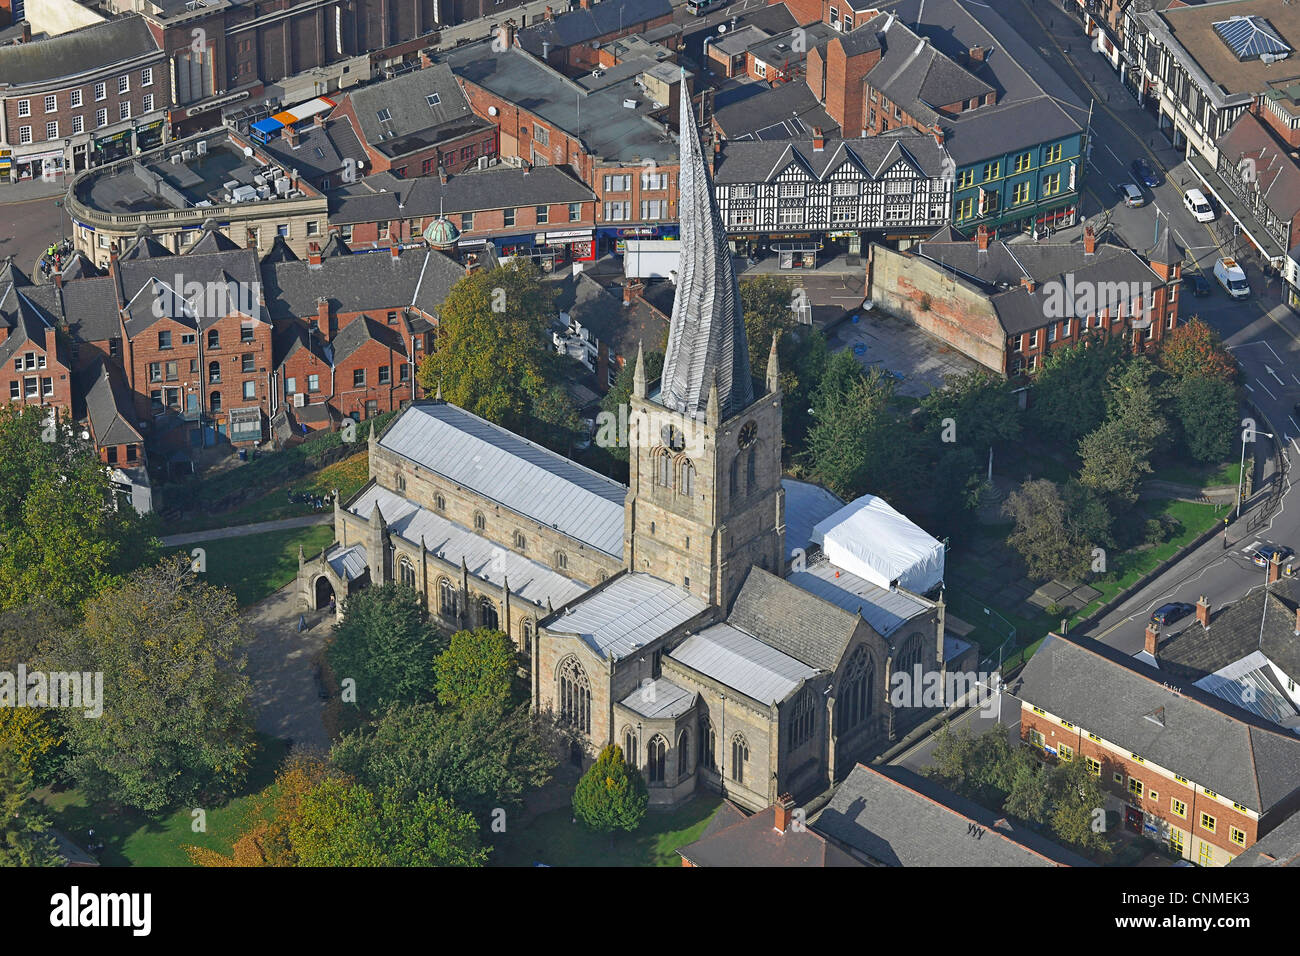 Aerial photograph showing the Church of Saint Mary and All Saints in Chesterfield with its twisted spire. - Stock Image